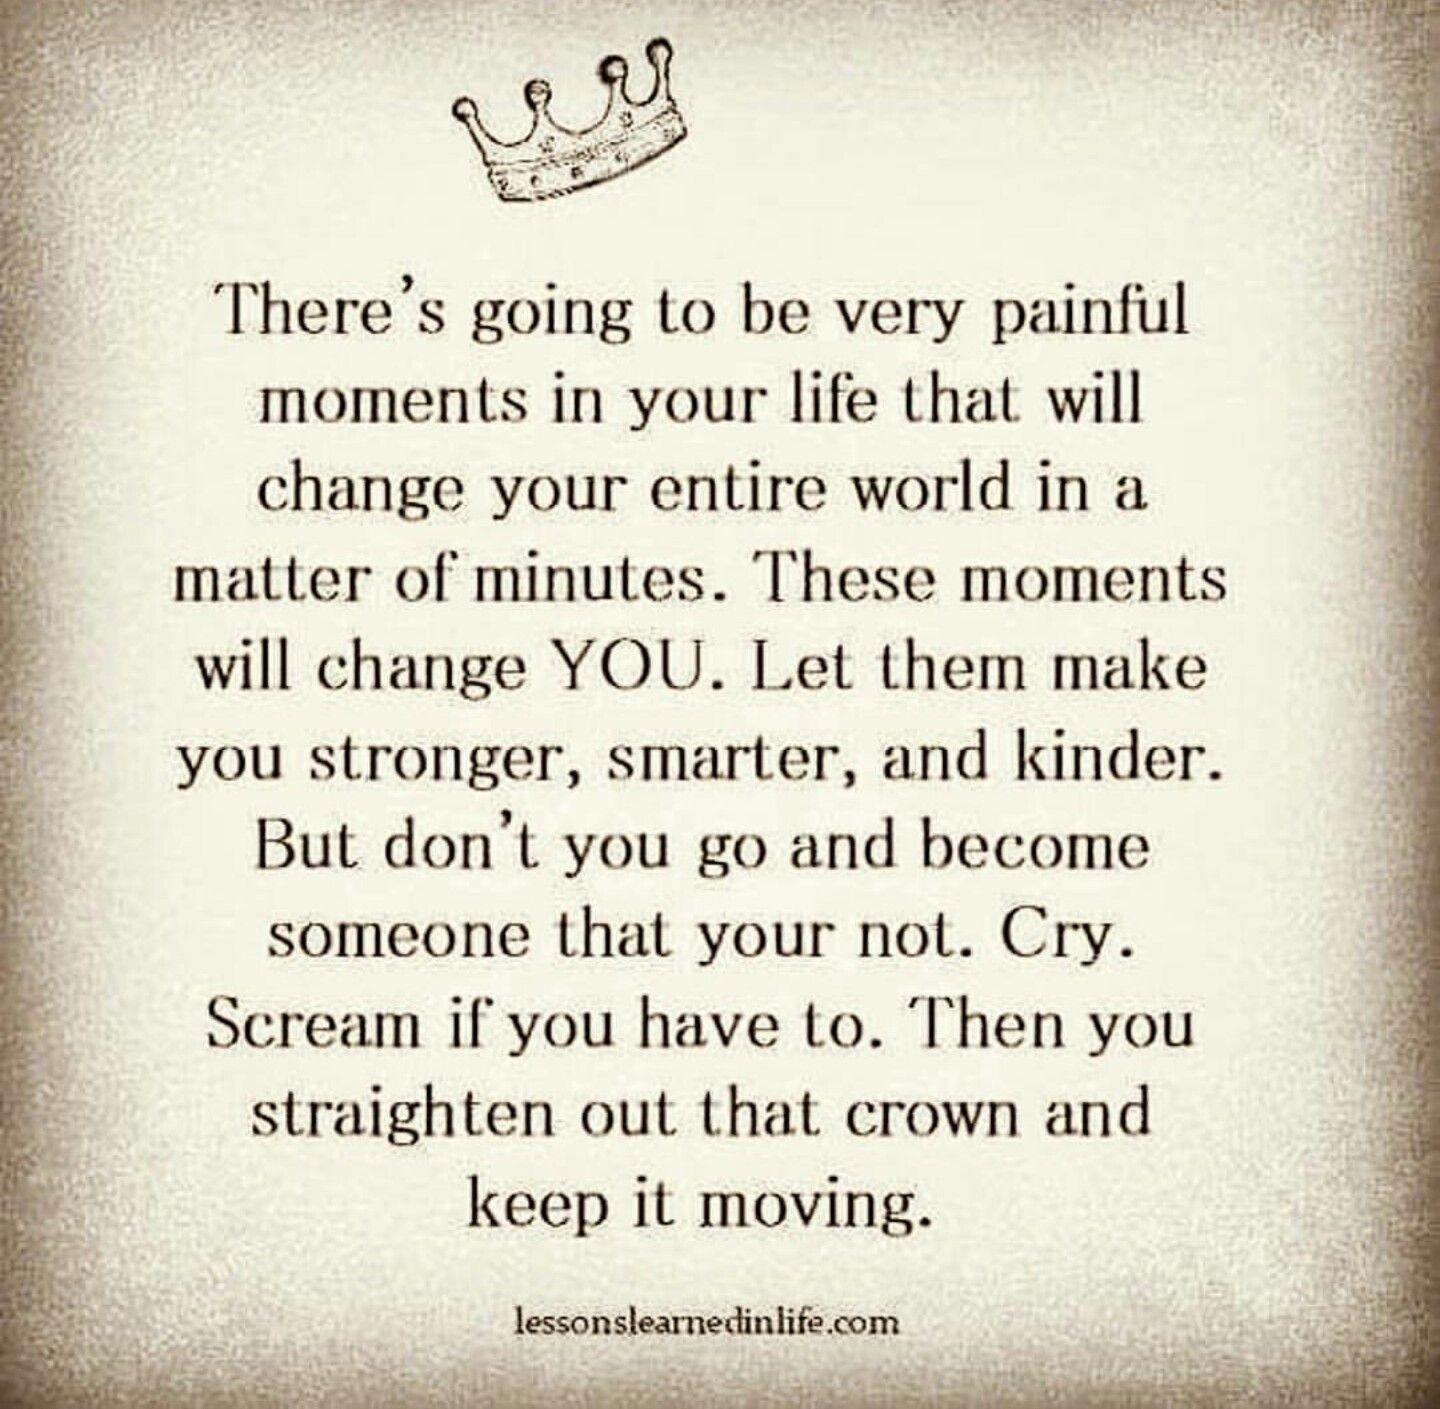 Quotes About Change And Moving On Pinjoliandra Gray On A Better Me  Pinterest  Strength